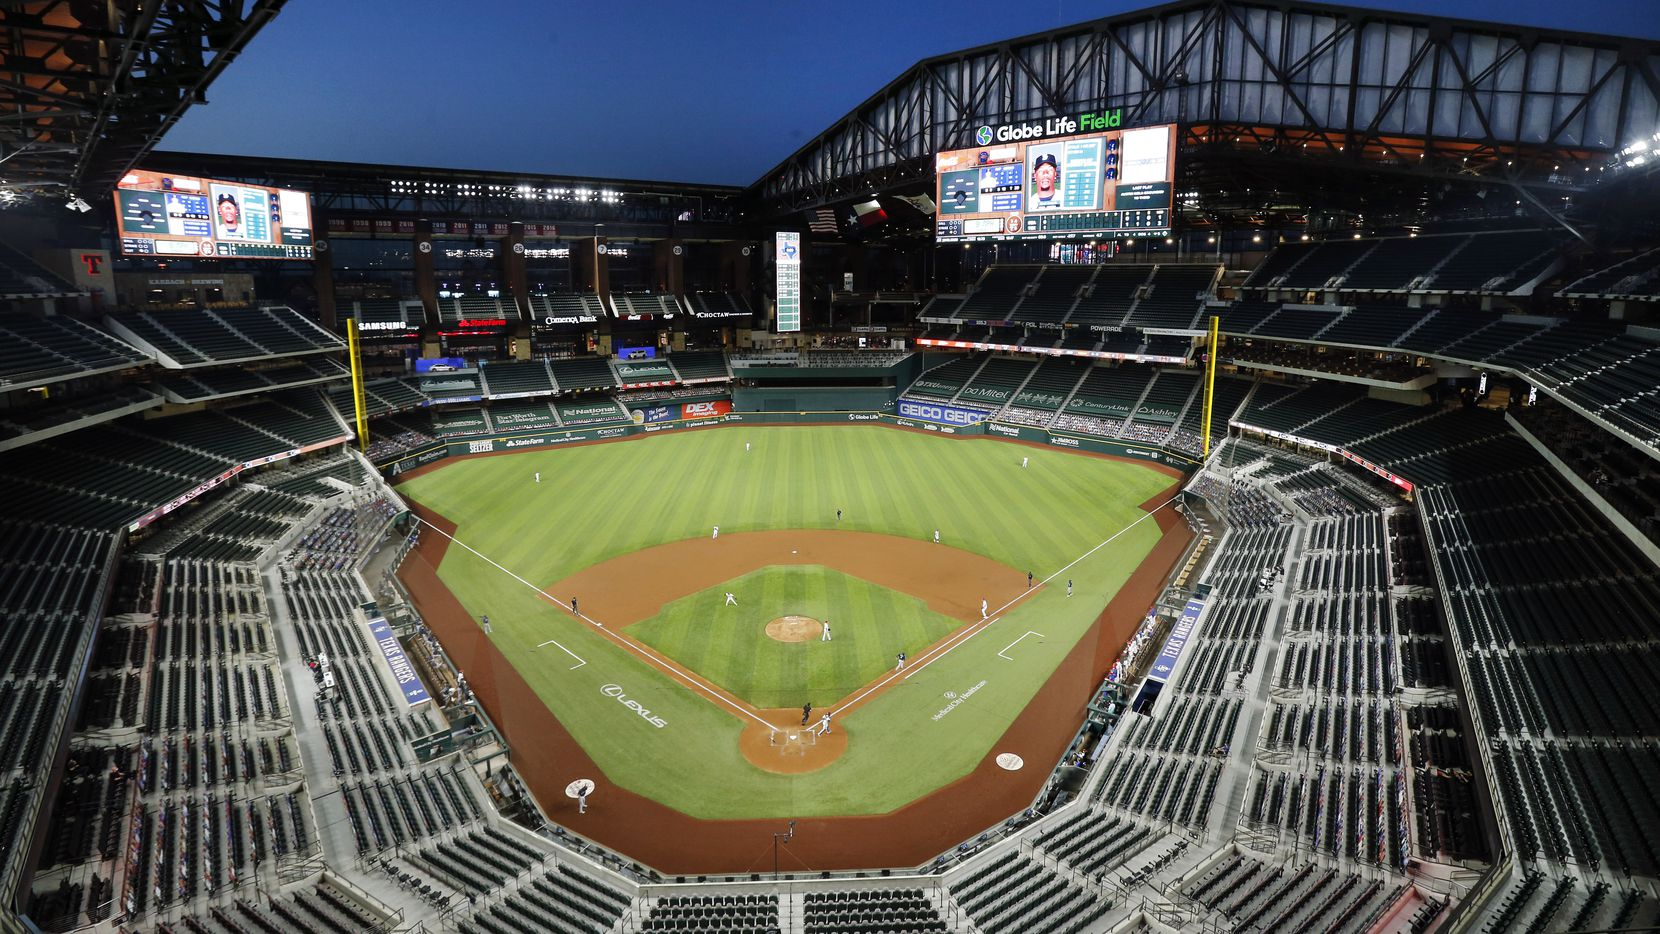 The retractable roof of Globe Life Field was open for the first time during a regular season game as the team faced the Seattle Mariners in Arlington, Monday, August 10, 2020.